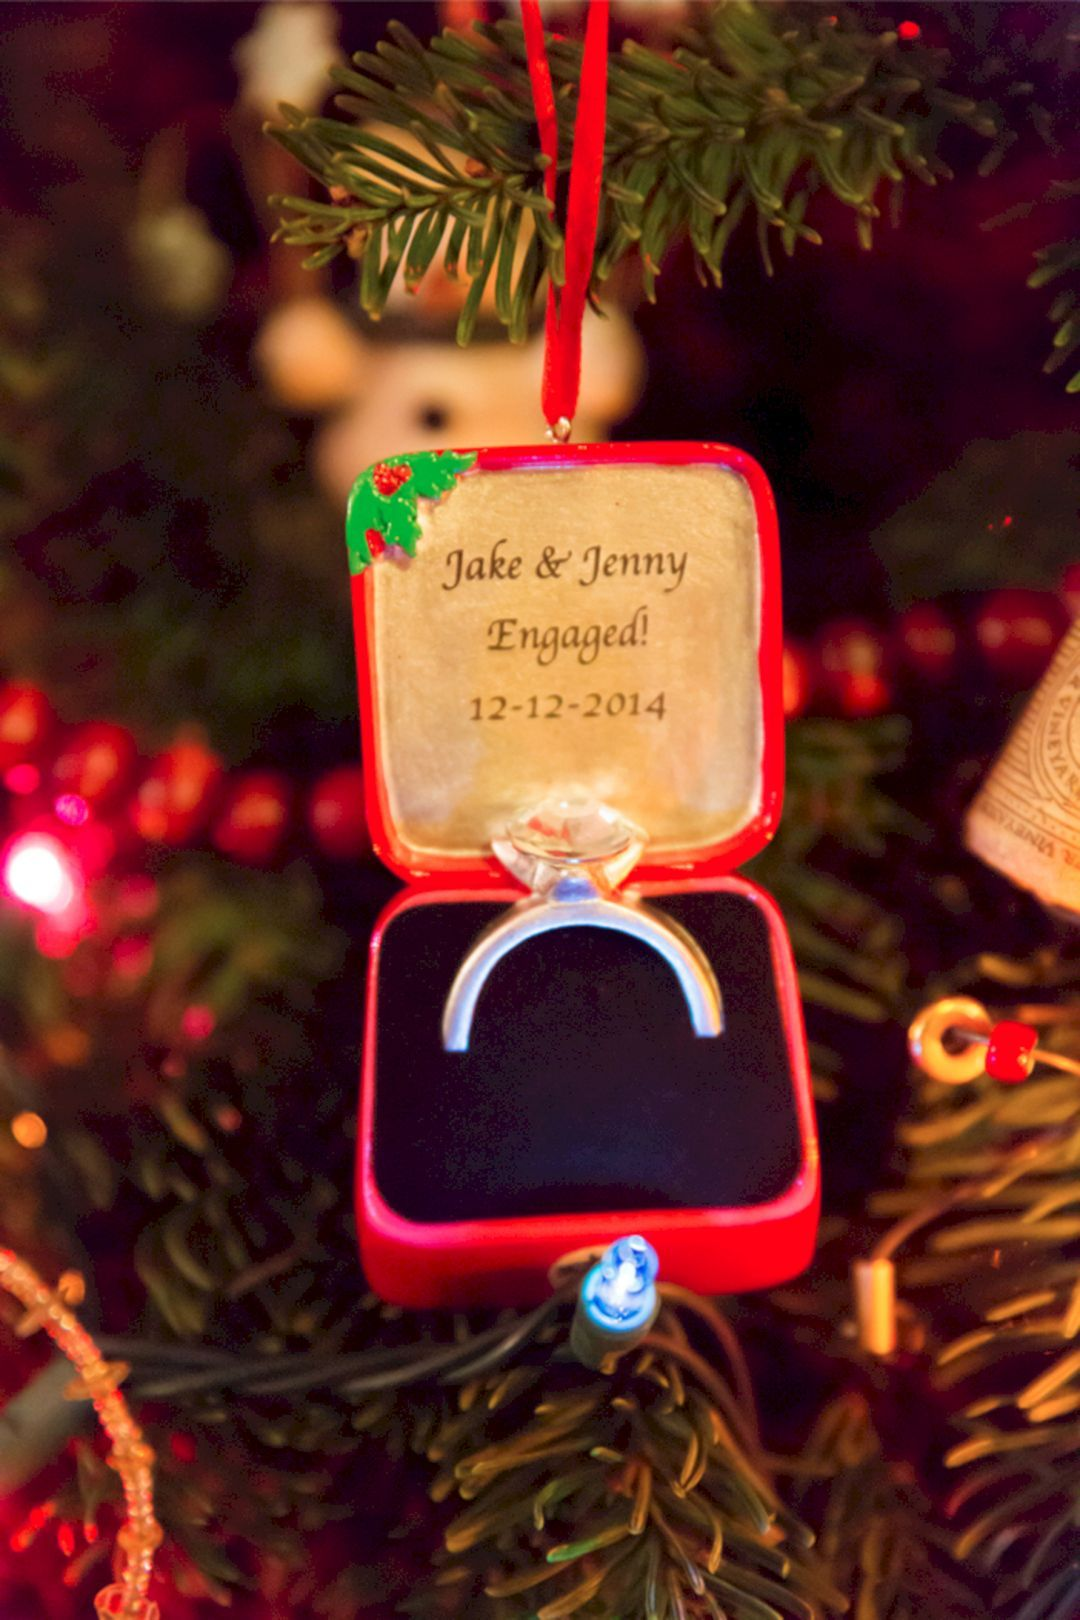 5 ideas for the perfect Christmas proposal recommend